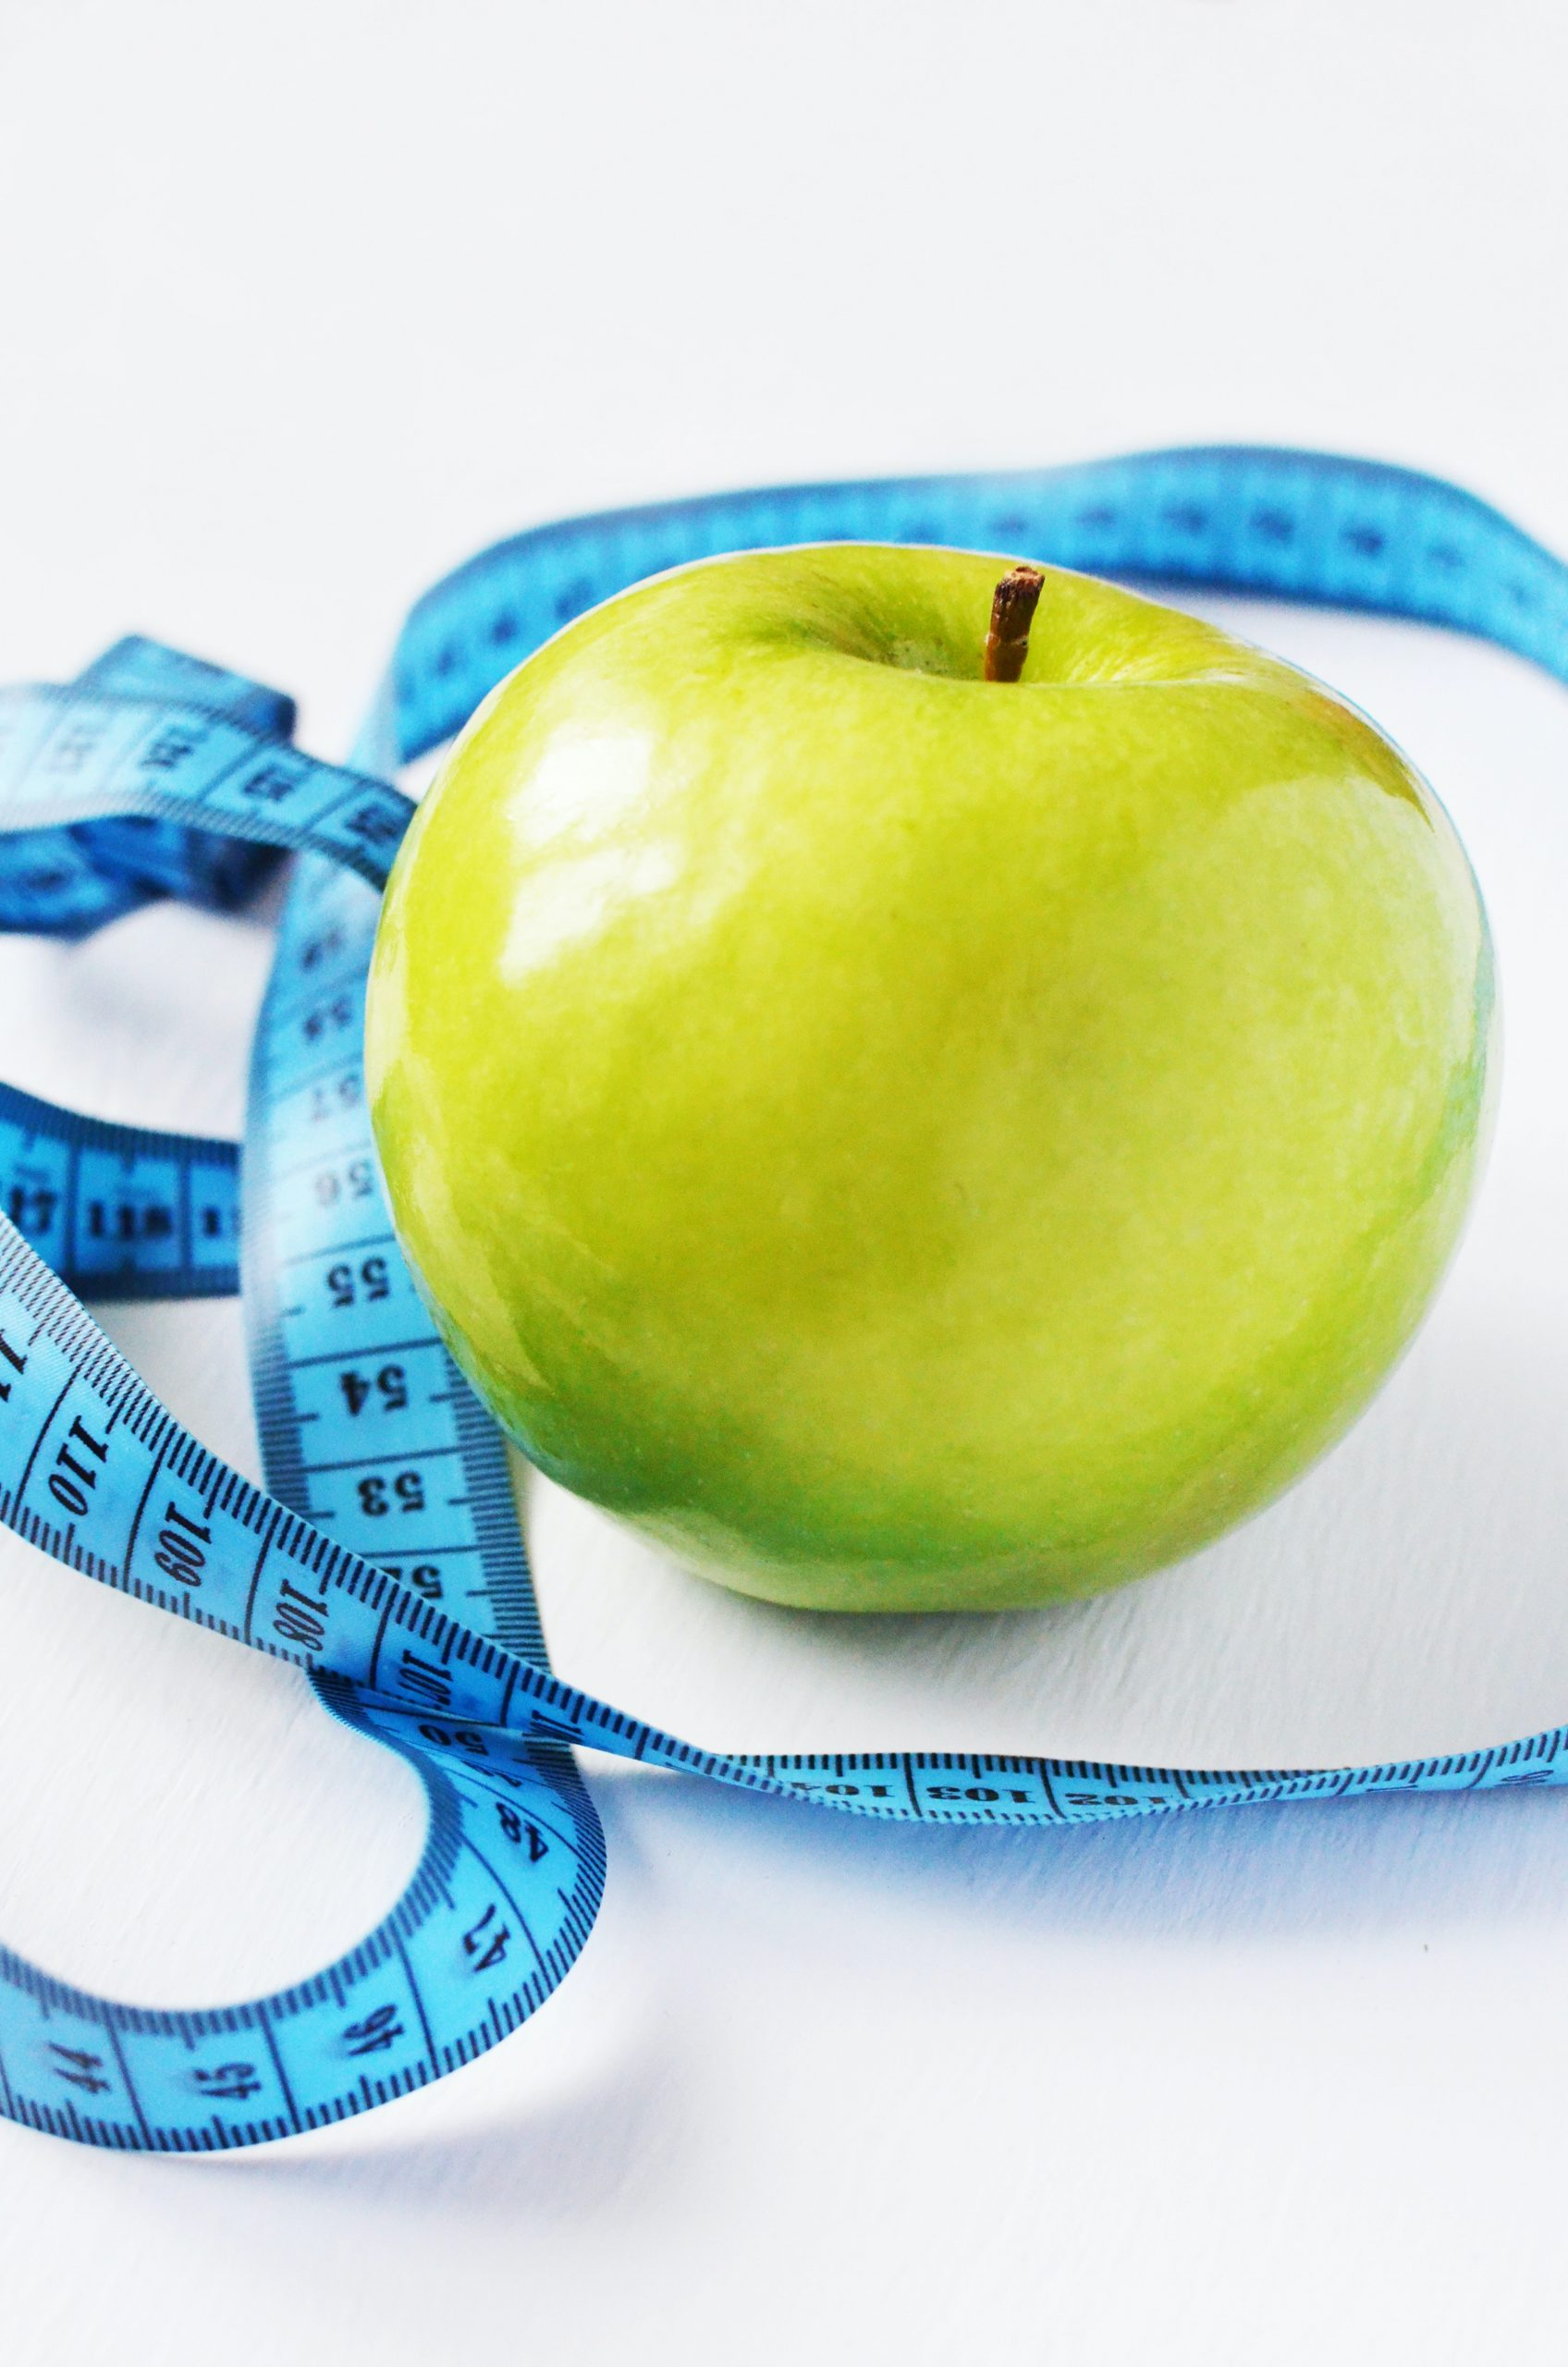 A New Way To Lose Weight The Vegemeal Plus Lean Body Program Elder Care Channel,Creative Workstation Design